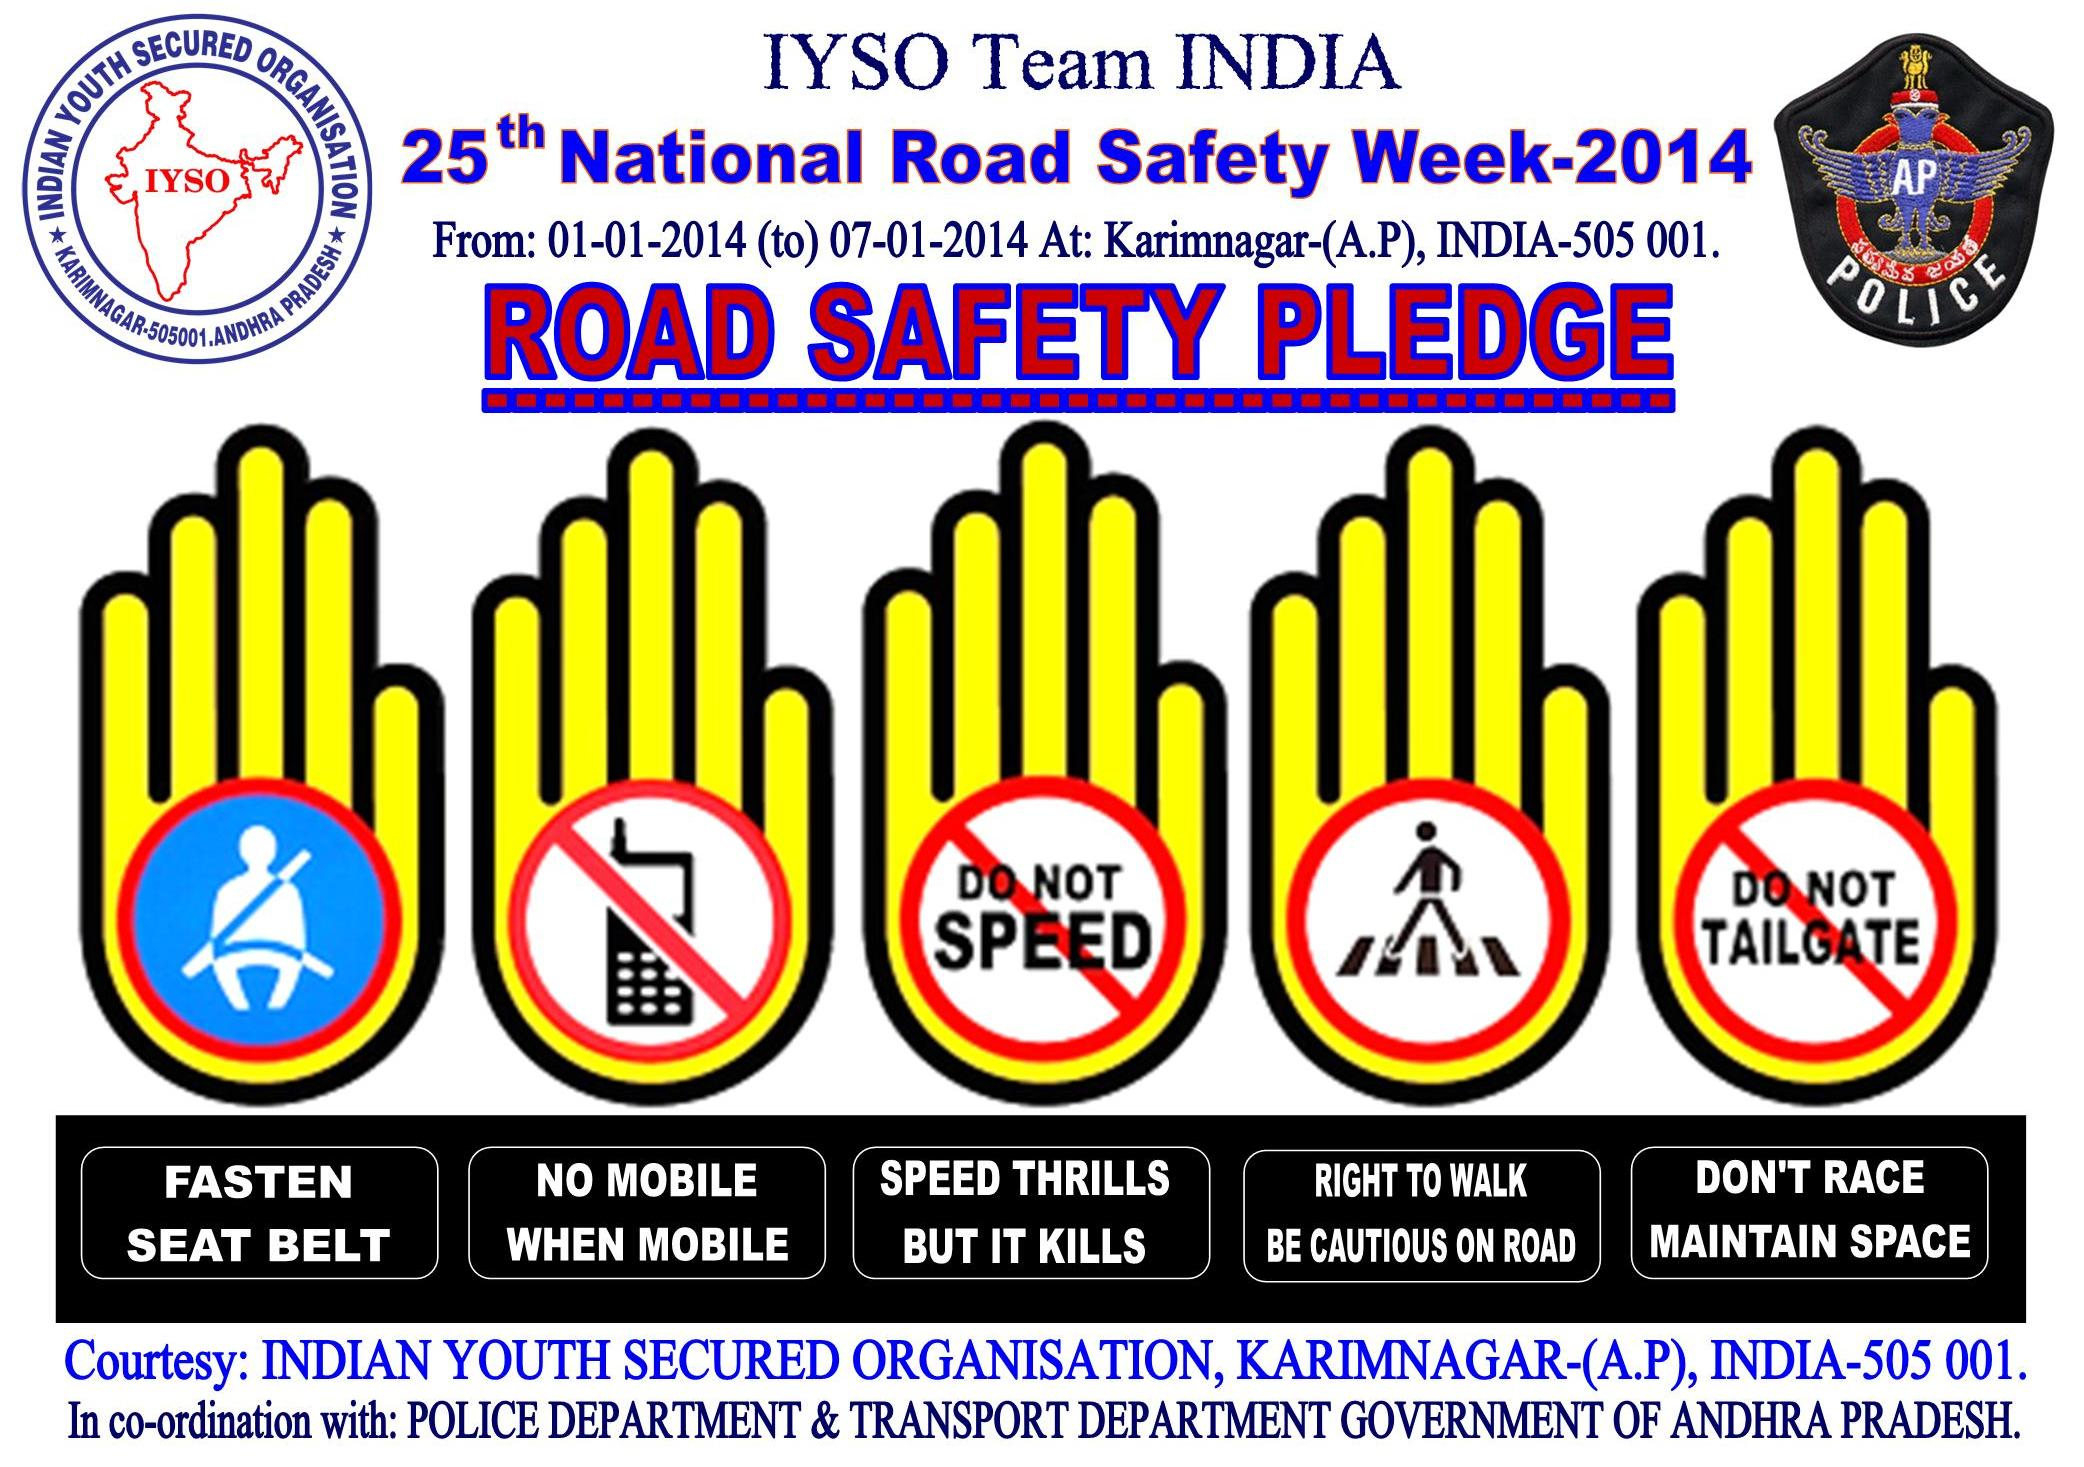 25th National Road Safety Week-2014 From: 01.01.2014 (to) 07.01.2014 ...